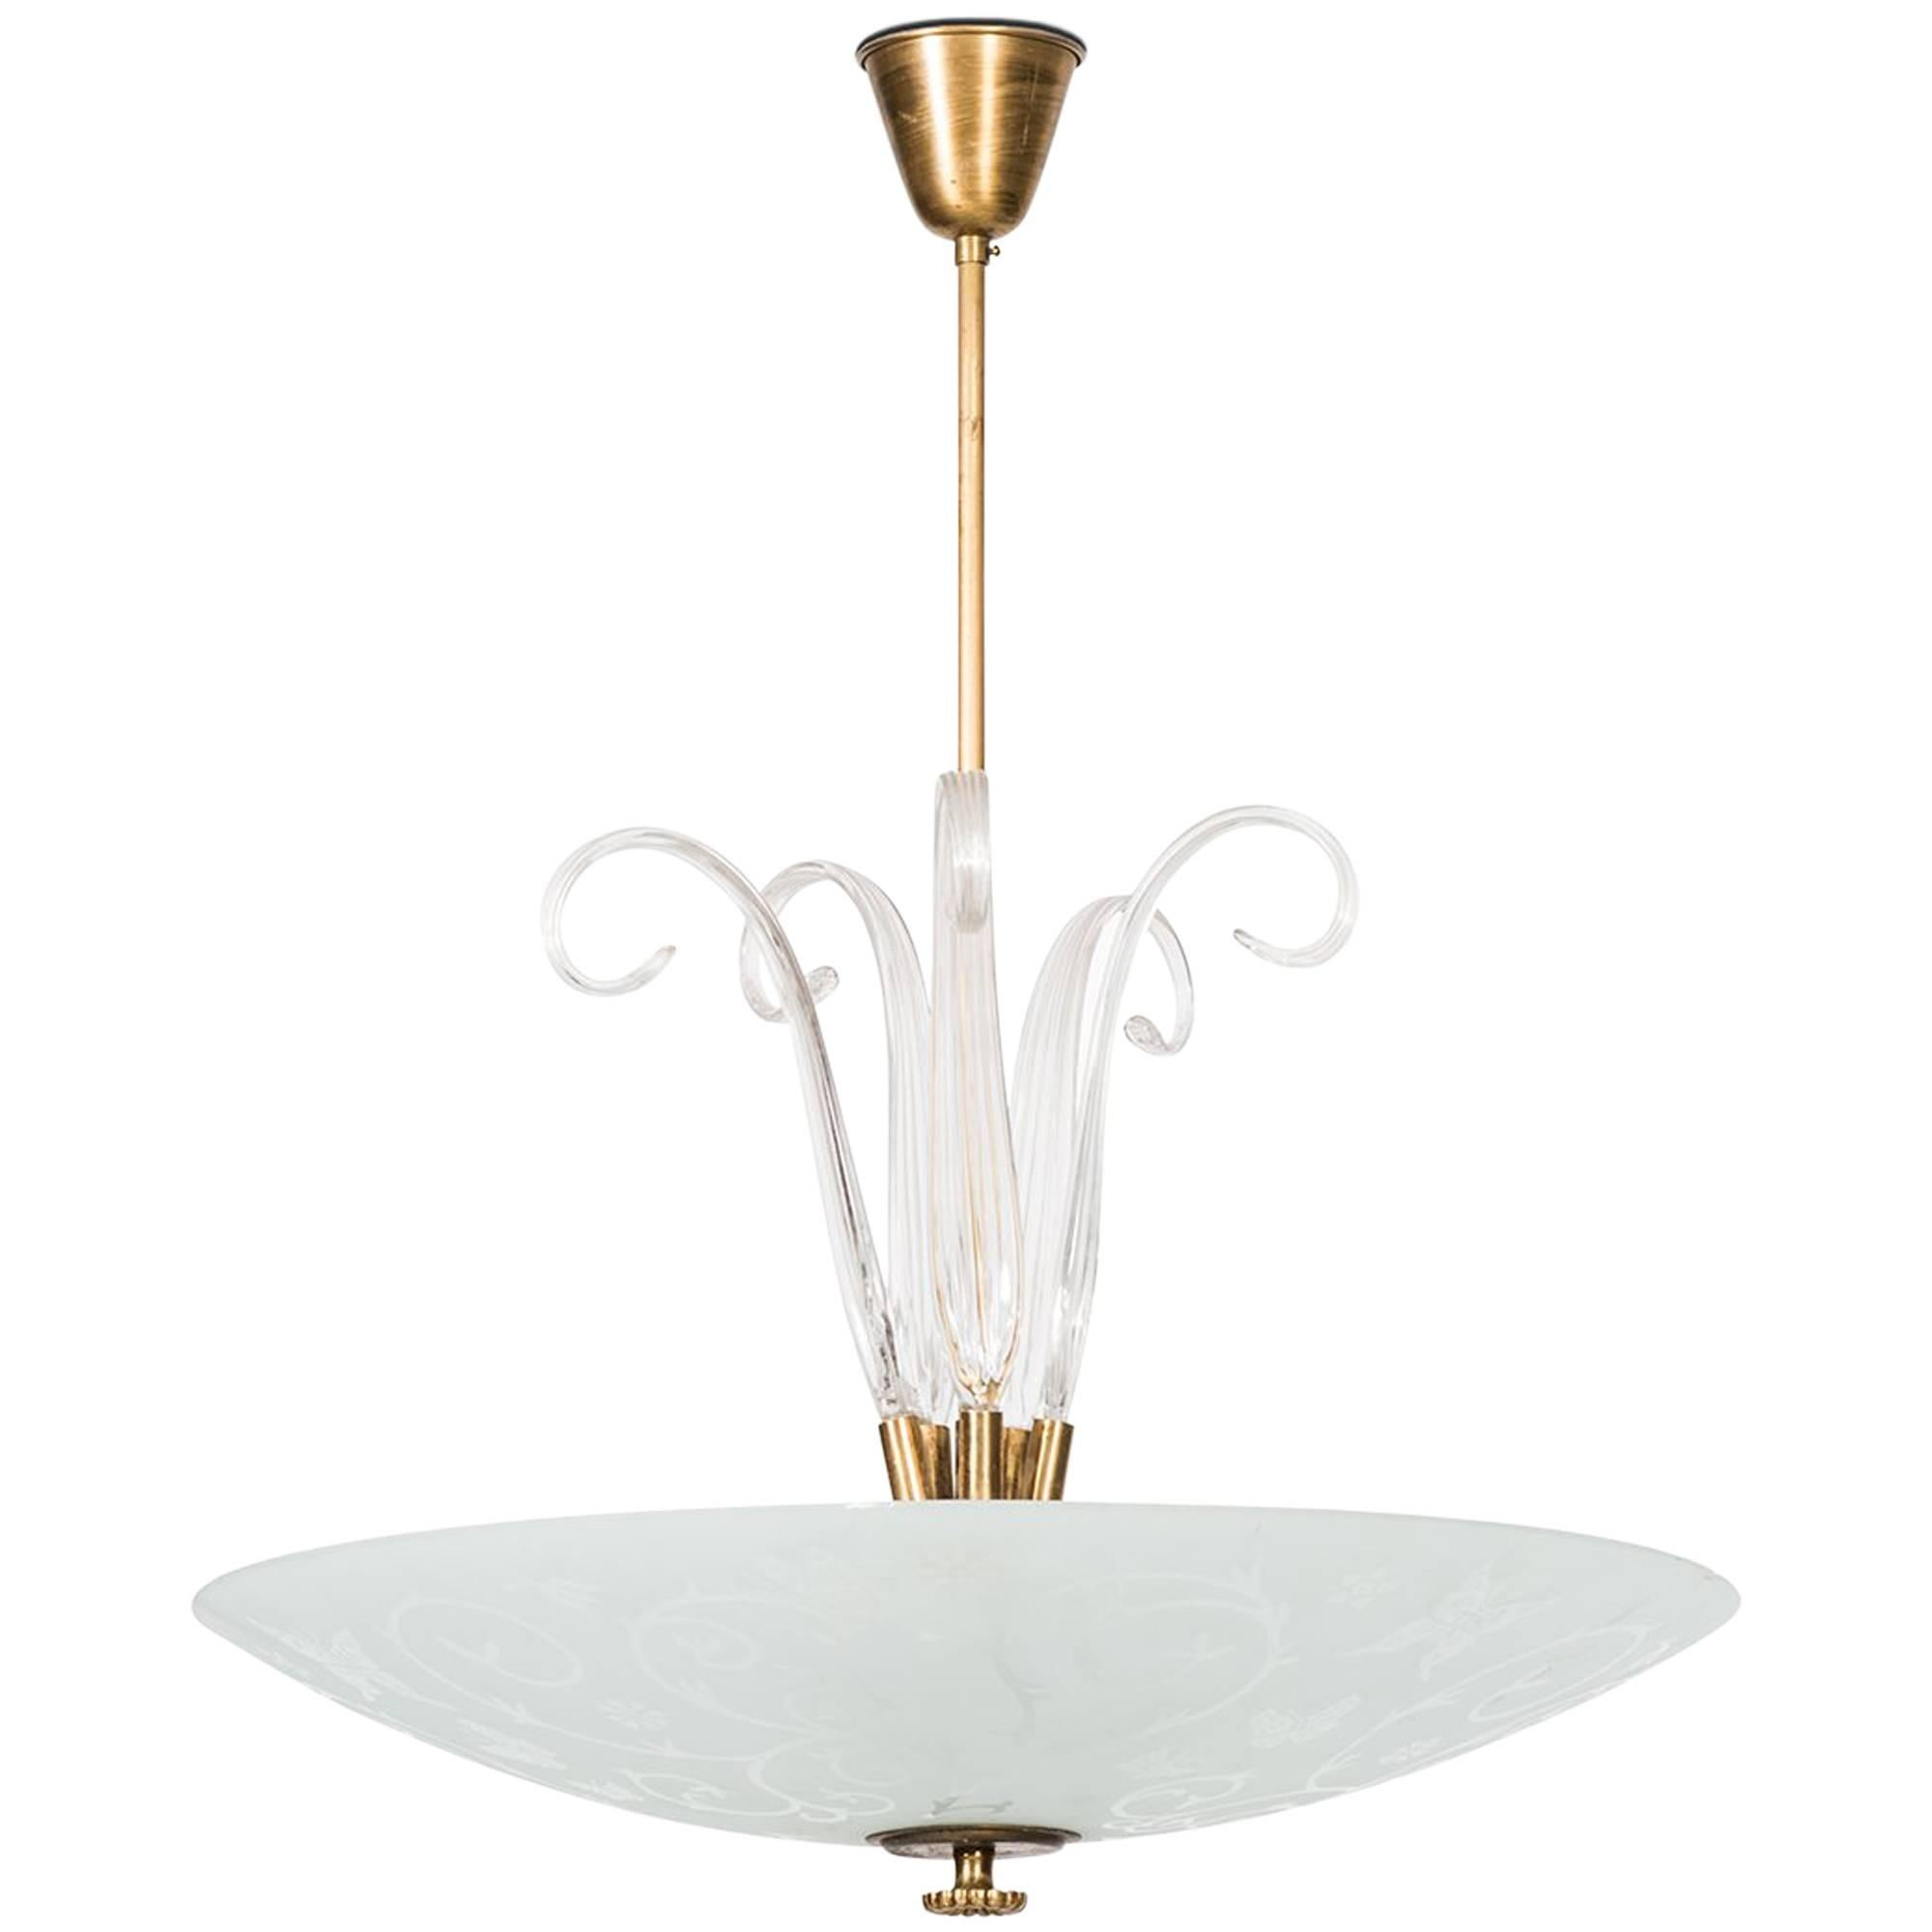 Large Ceiling Lamp Produced by Orrefors in Sweden